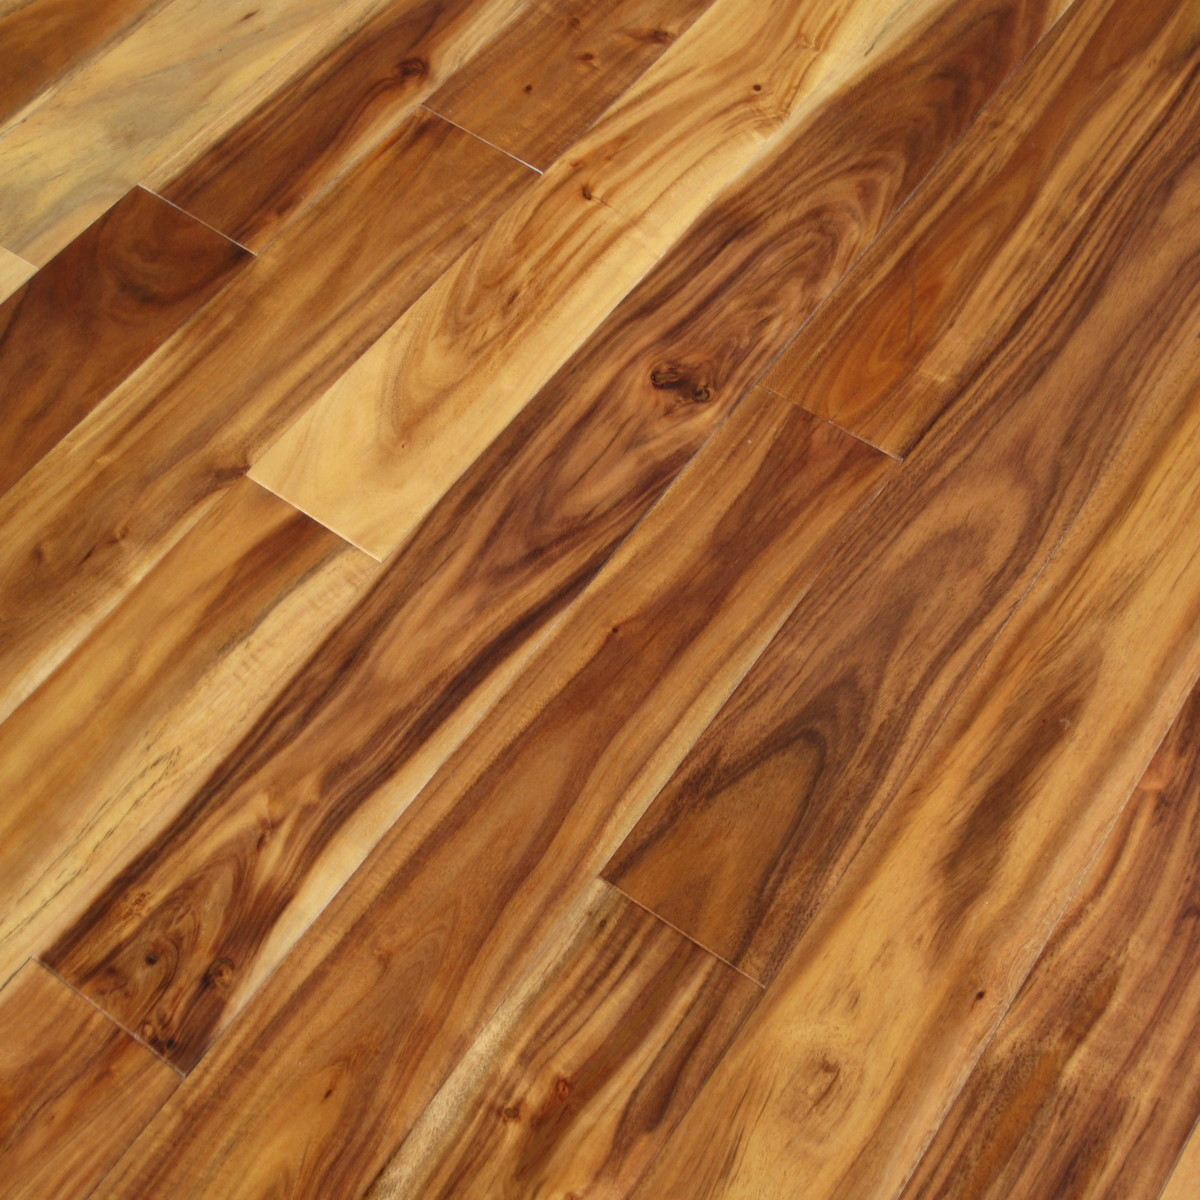 Acacia natural plank hardwood flooring unique wood floors for Hardwood decking planks